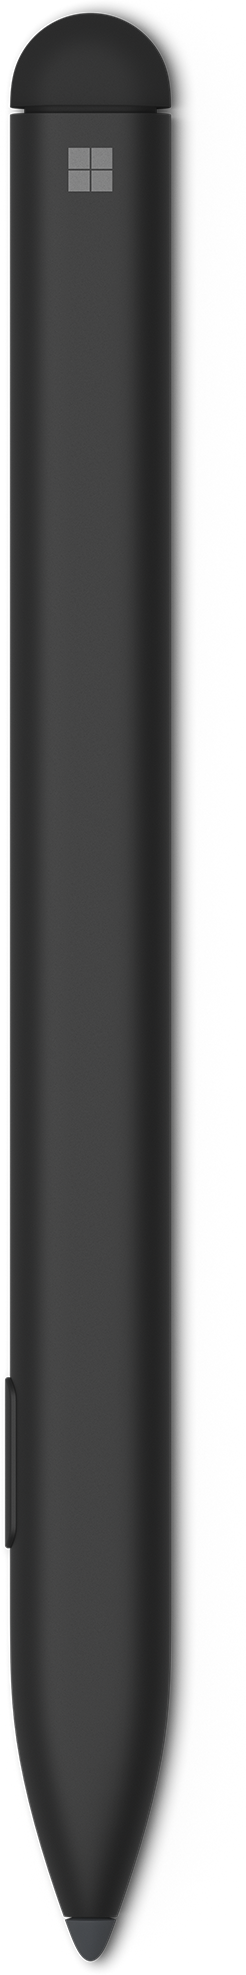 Image of Surface Slim Pen